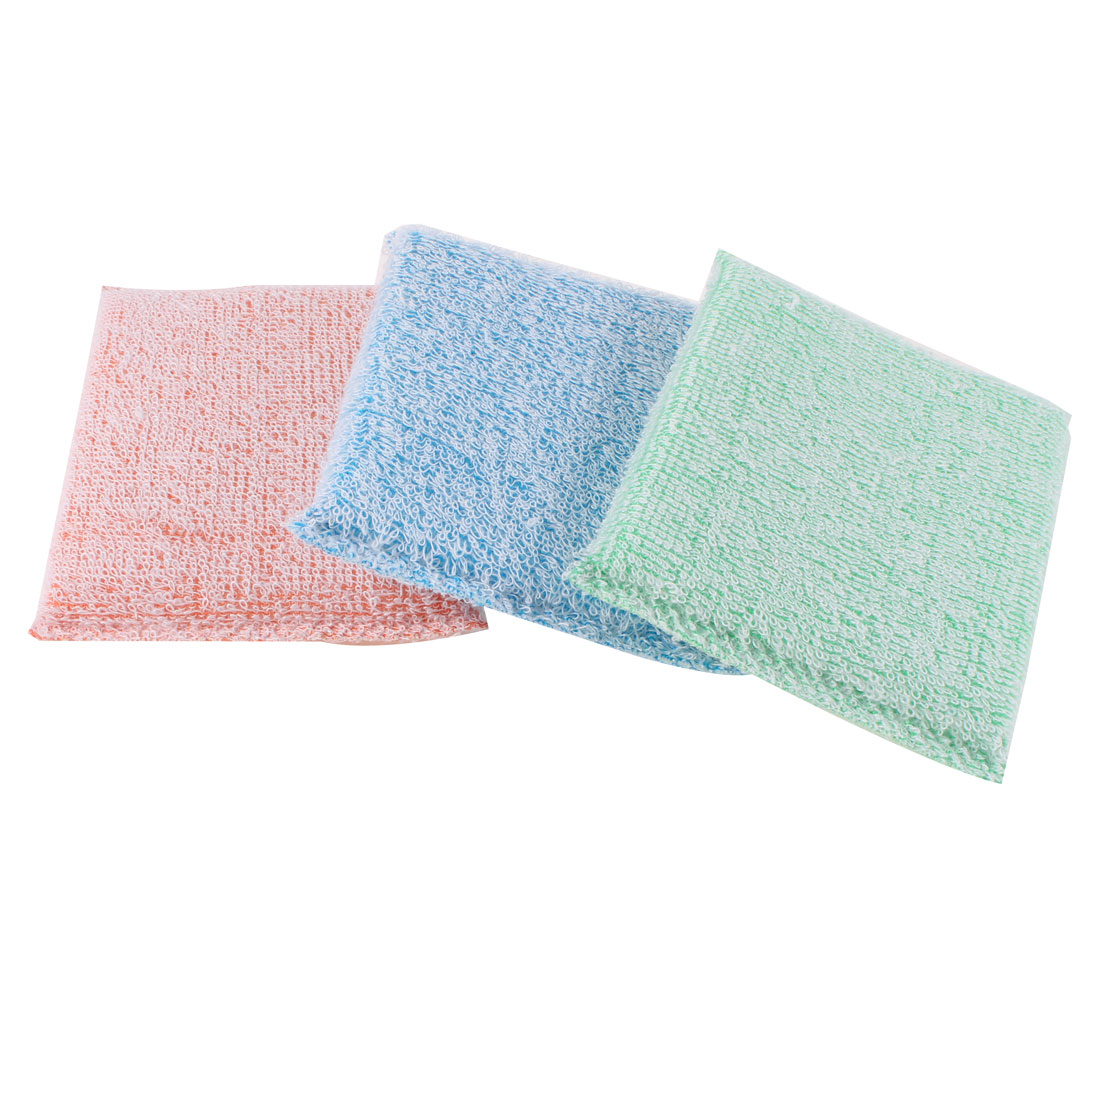 3 Pcs Three Colors Sponge Cleaning Water Absorbing Block for Kitchen